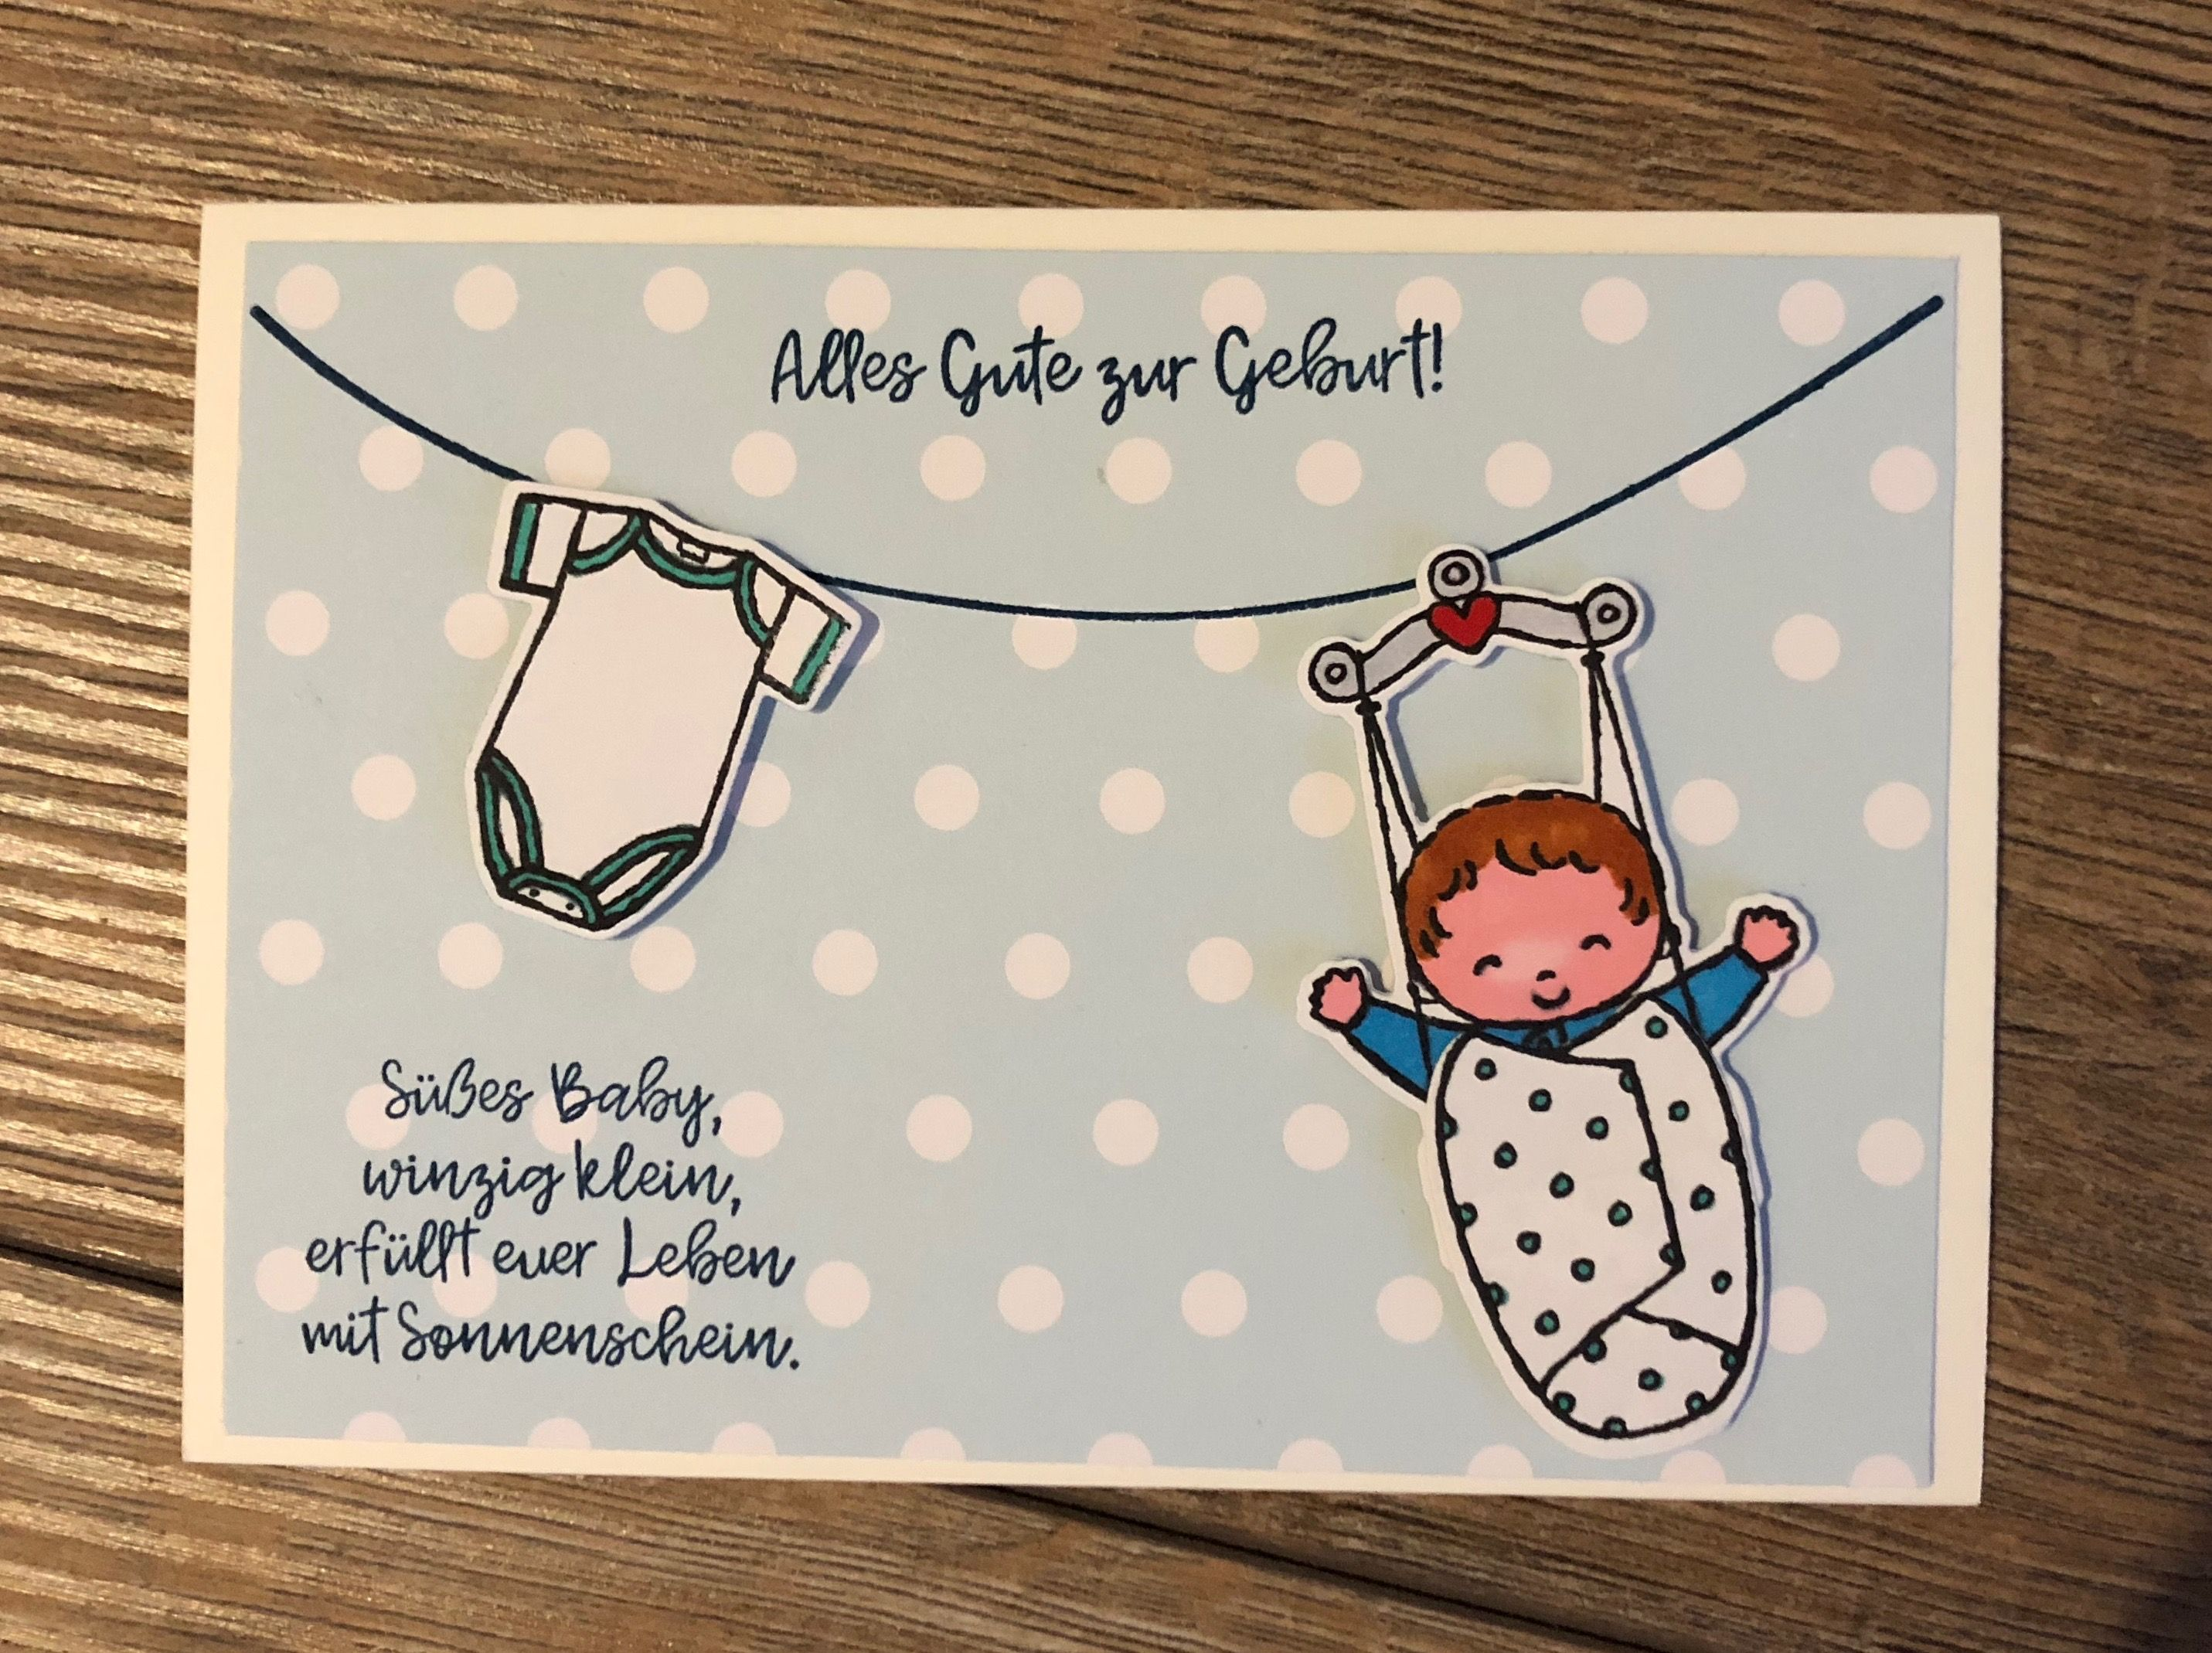 Stampin Up Susses Baby Susse Babys Baby Susses